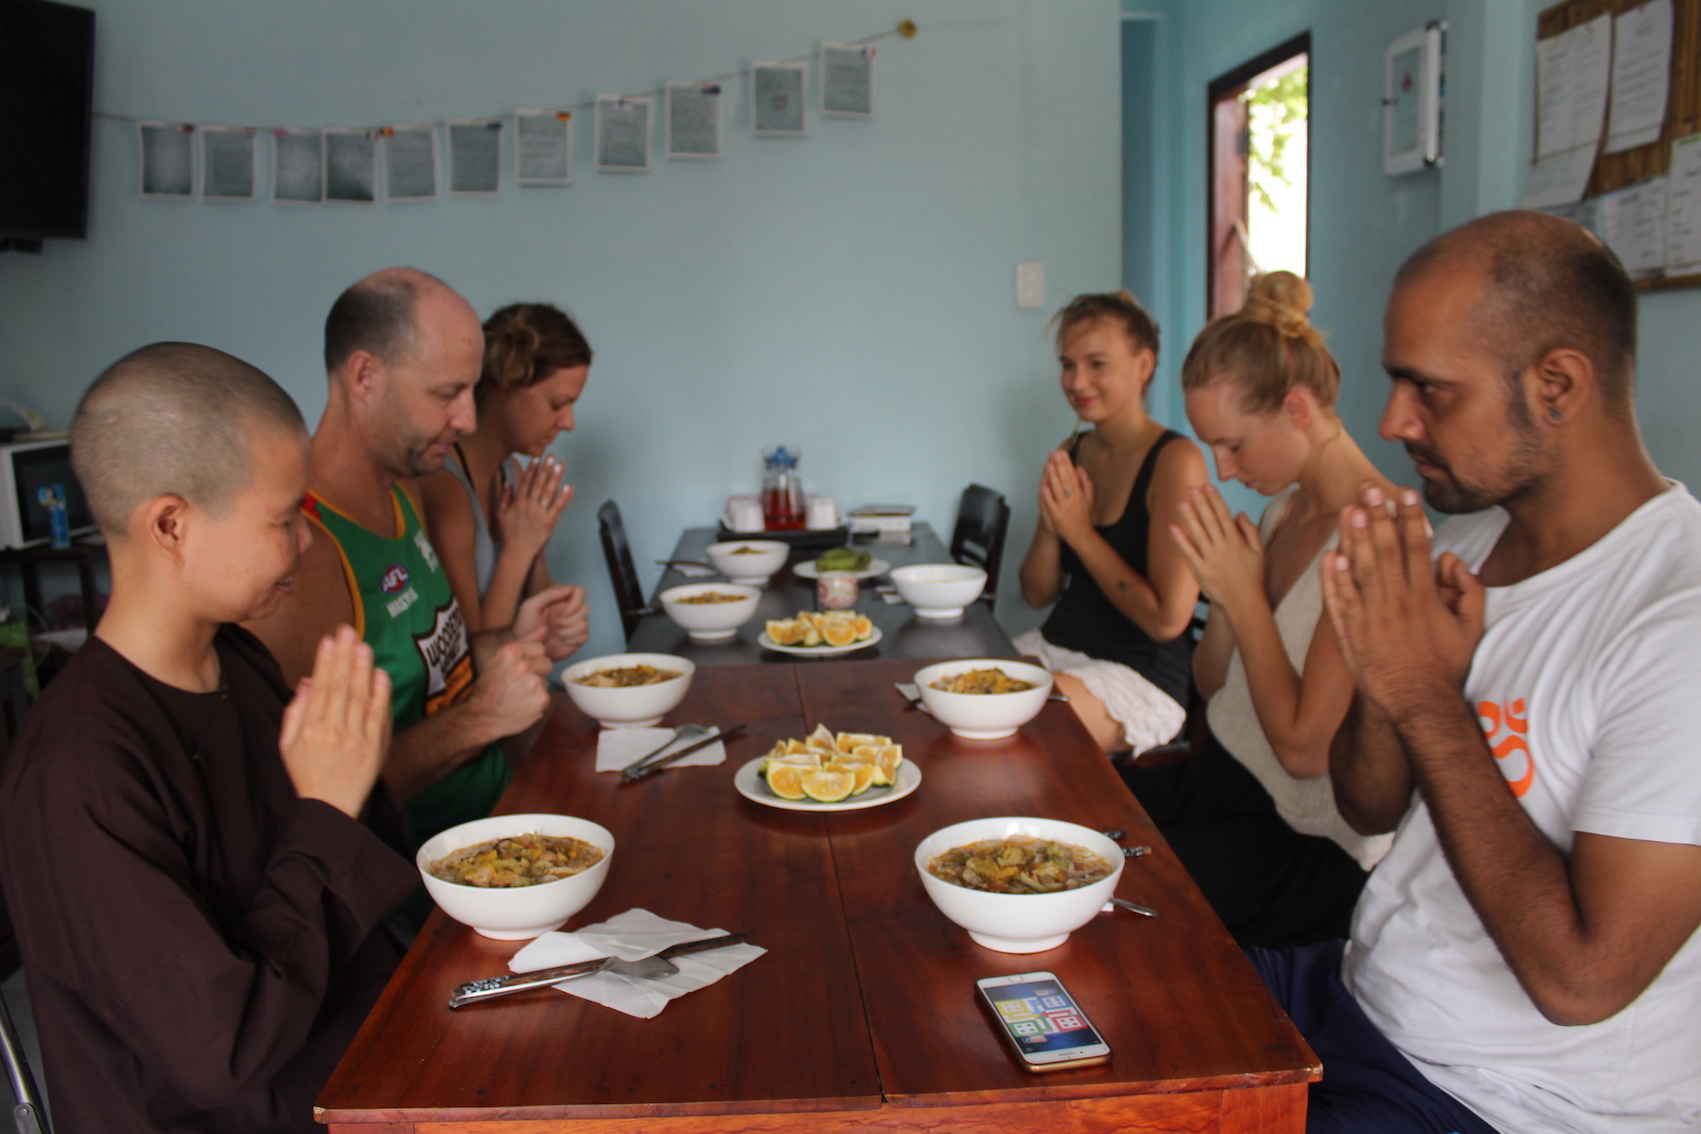 island-smiles-yoga-retreat-eatting-meditation.JPG